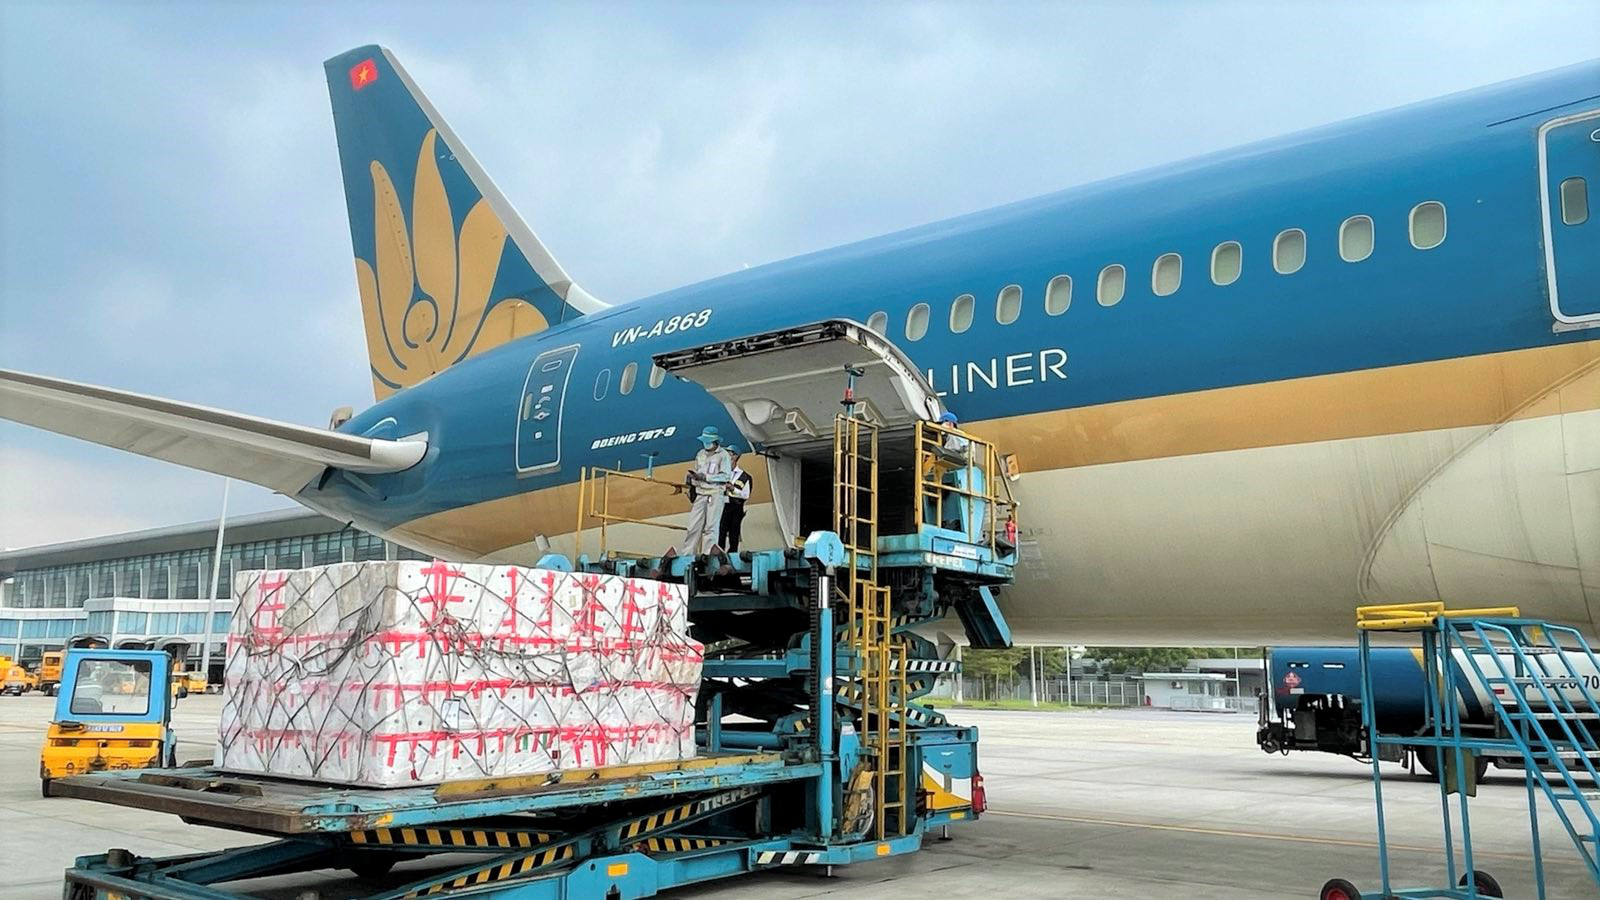 Vietnamese airlines shift to cargo transport amid COVID-19 pandemic